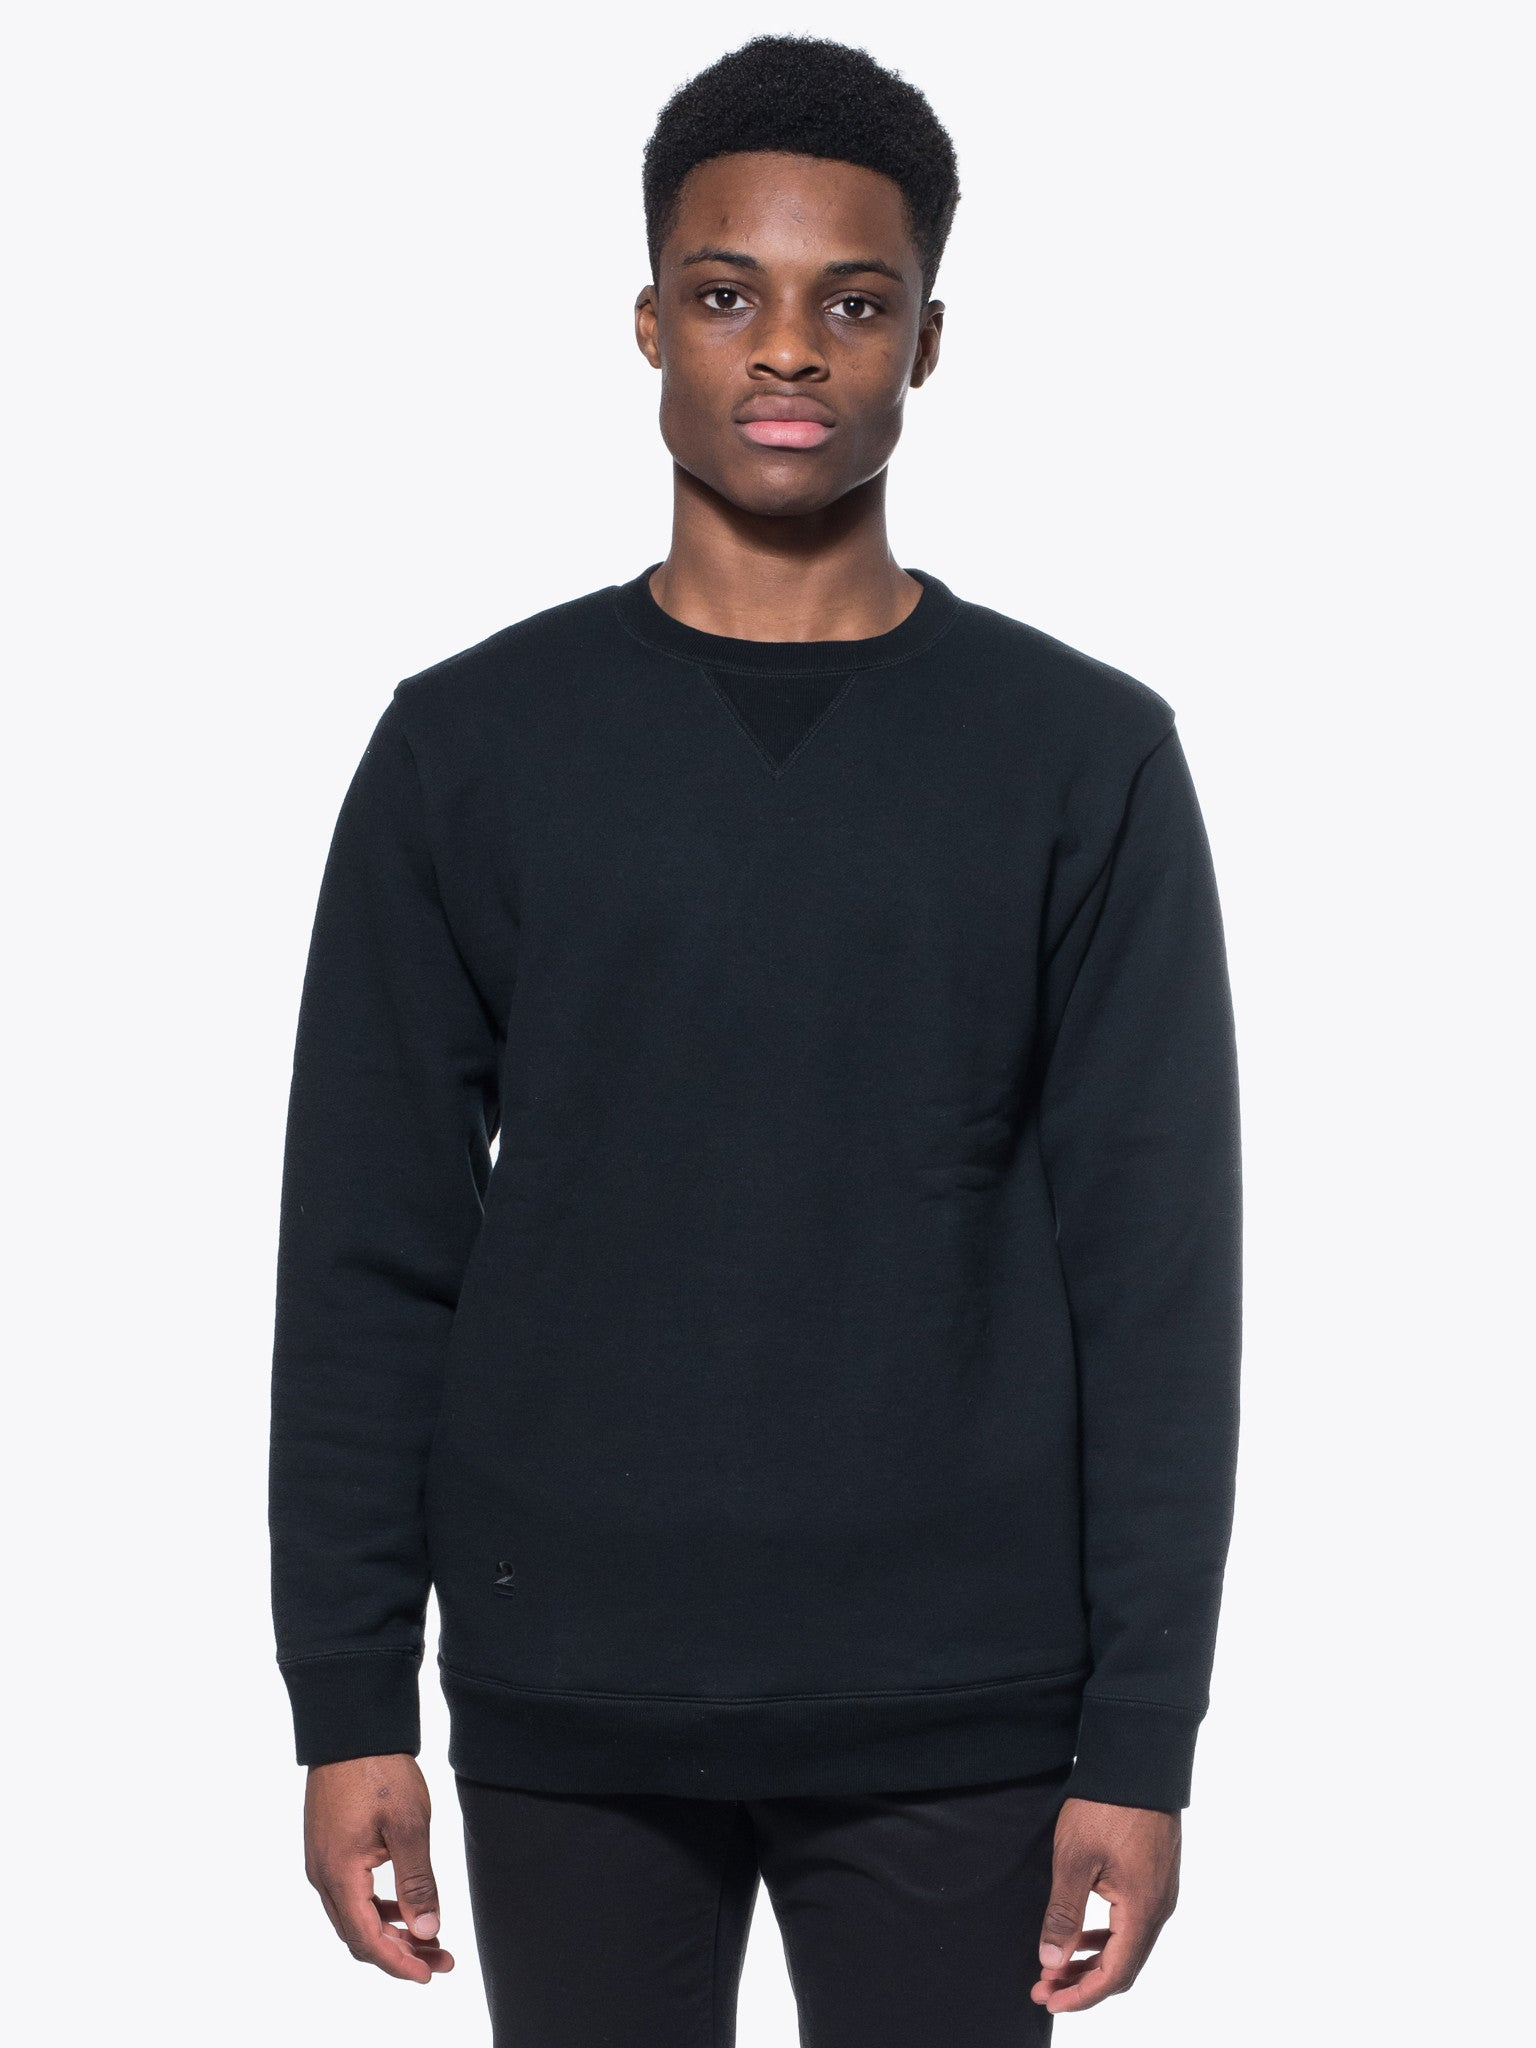 The Seconds Crewneck